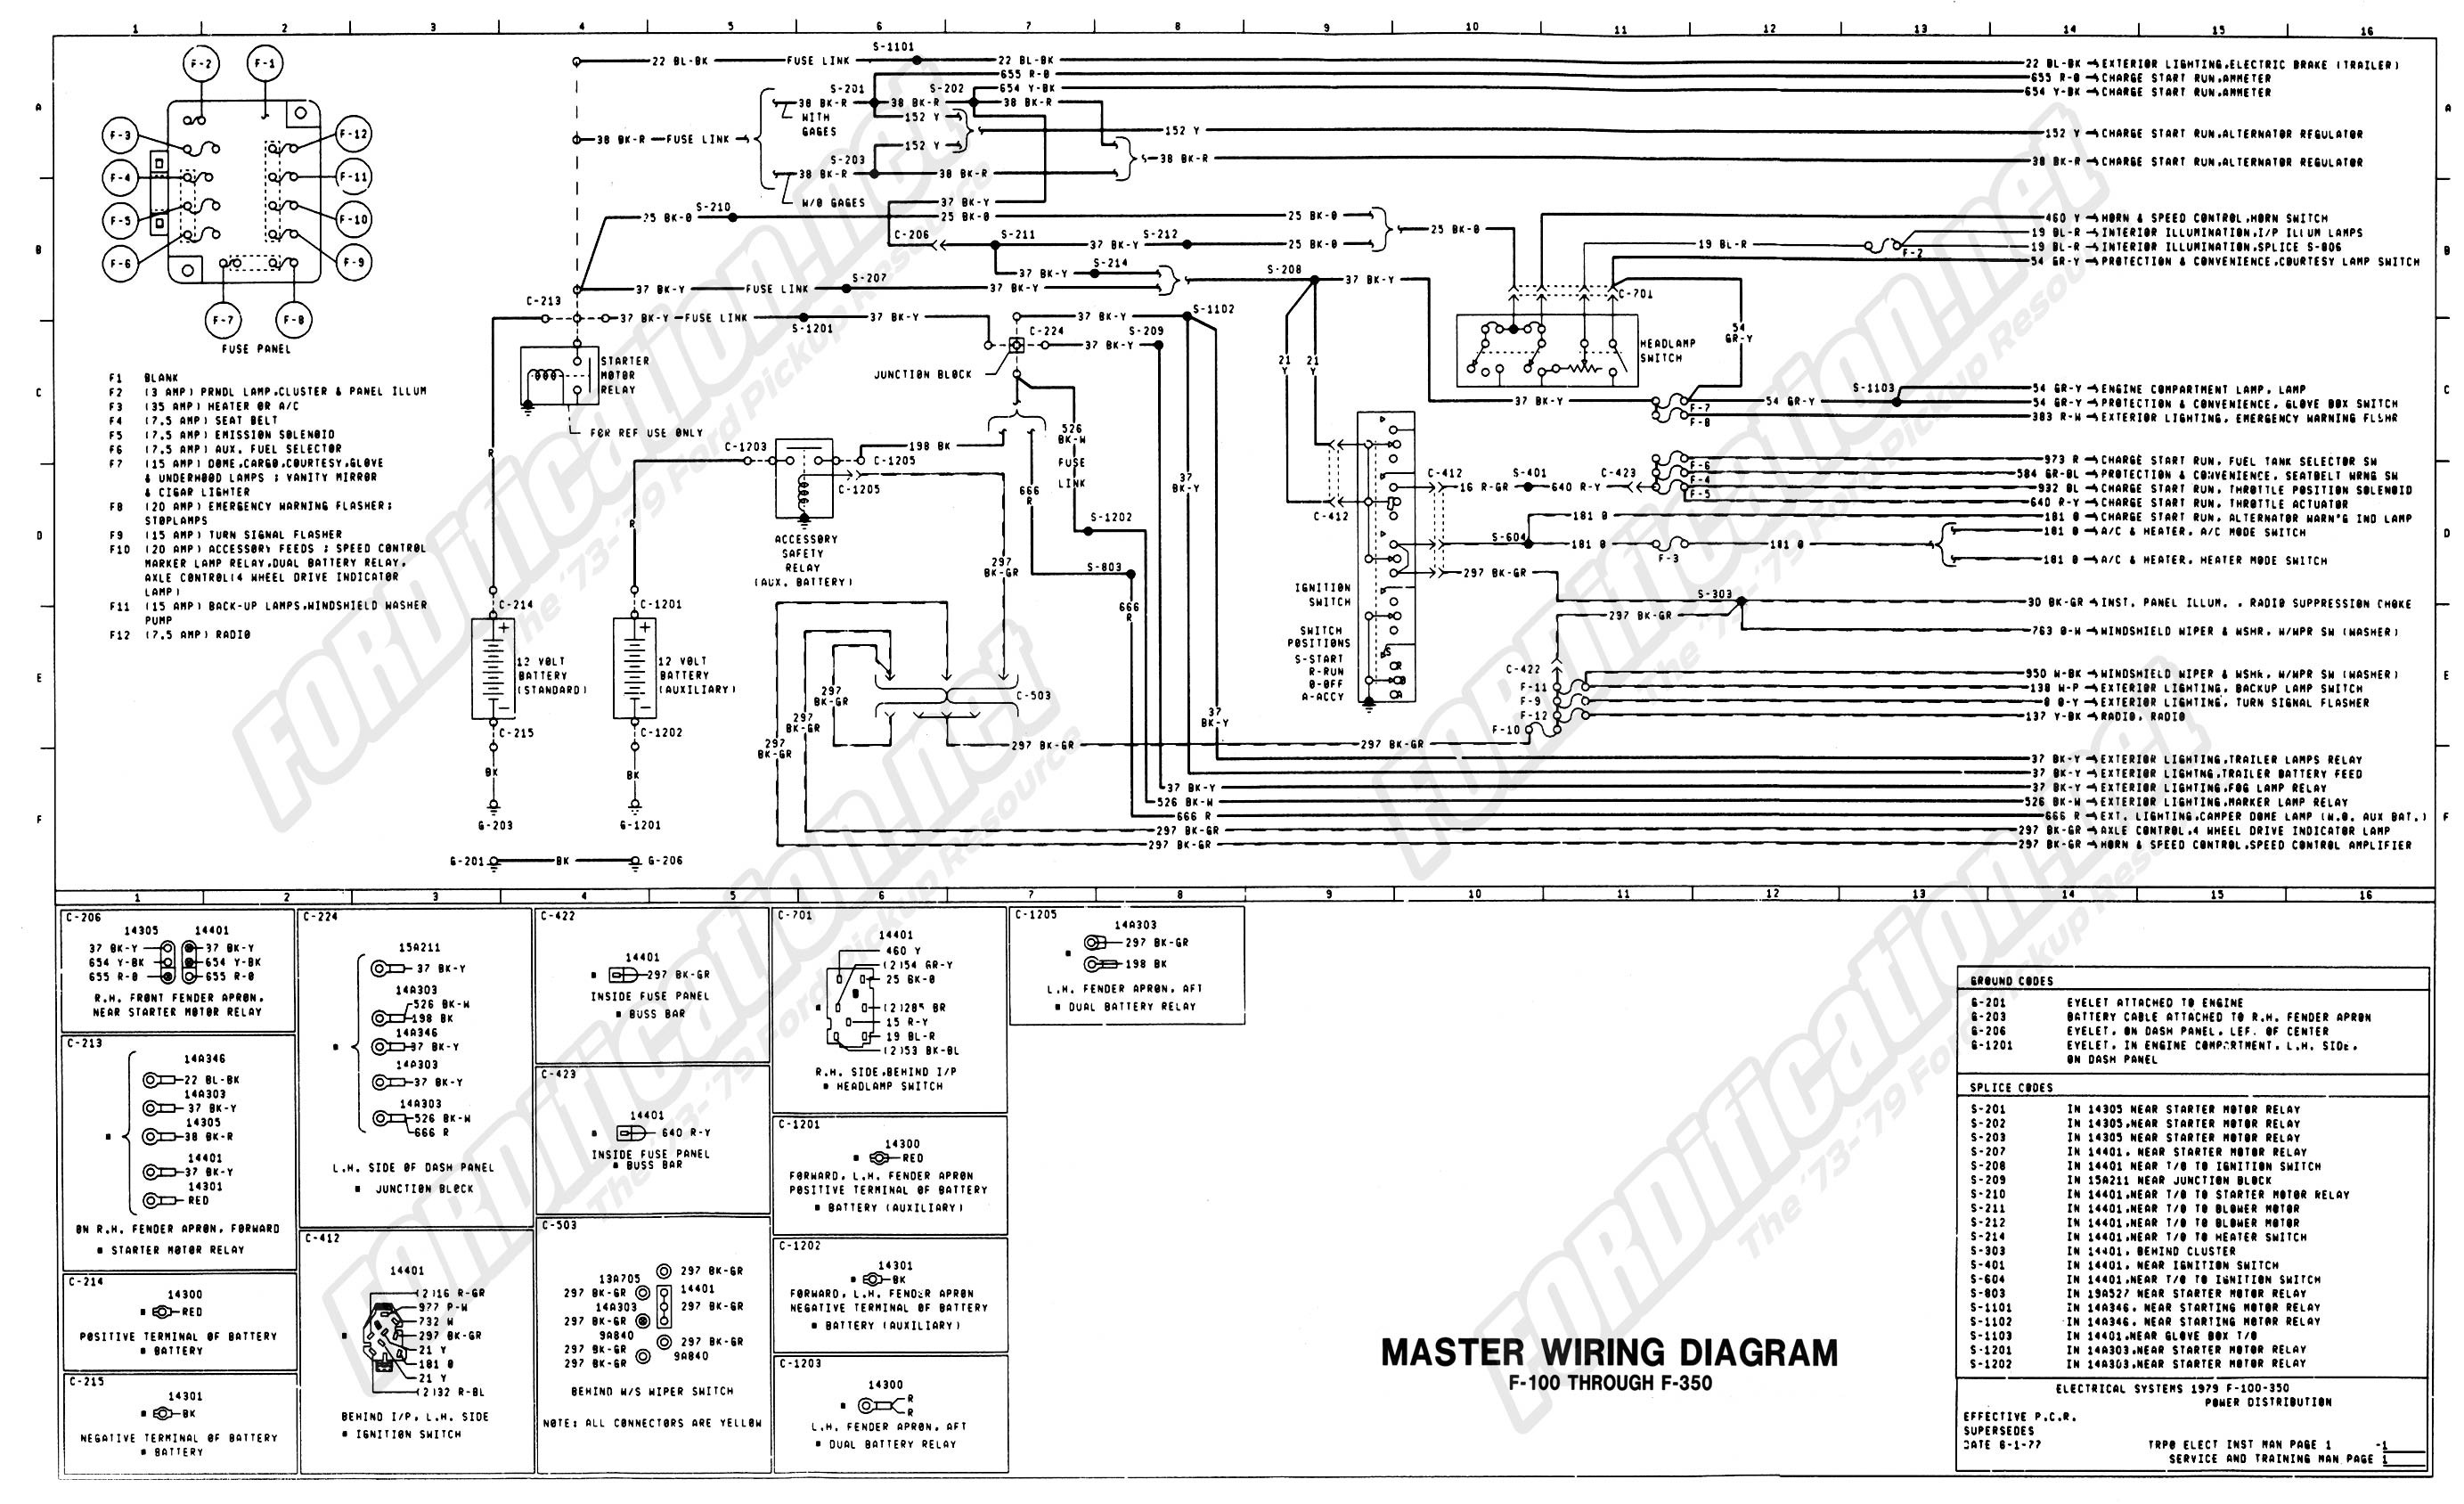 Ford F250 Starter Solenoid Wiring Diagram Image 72 Truck Diagrams 1of9 79 F150